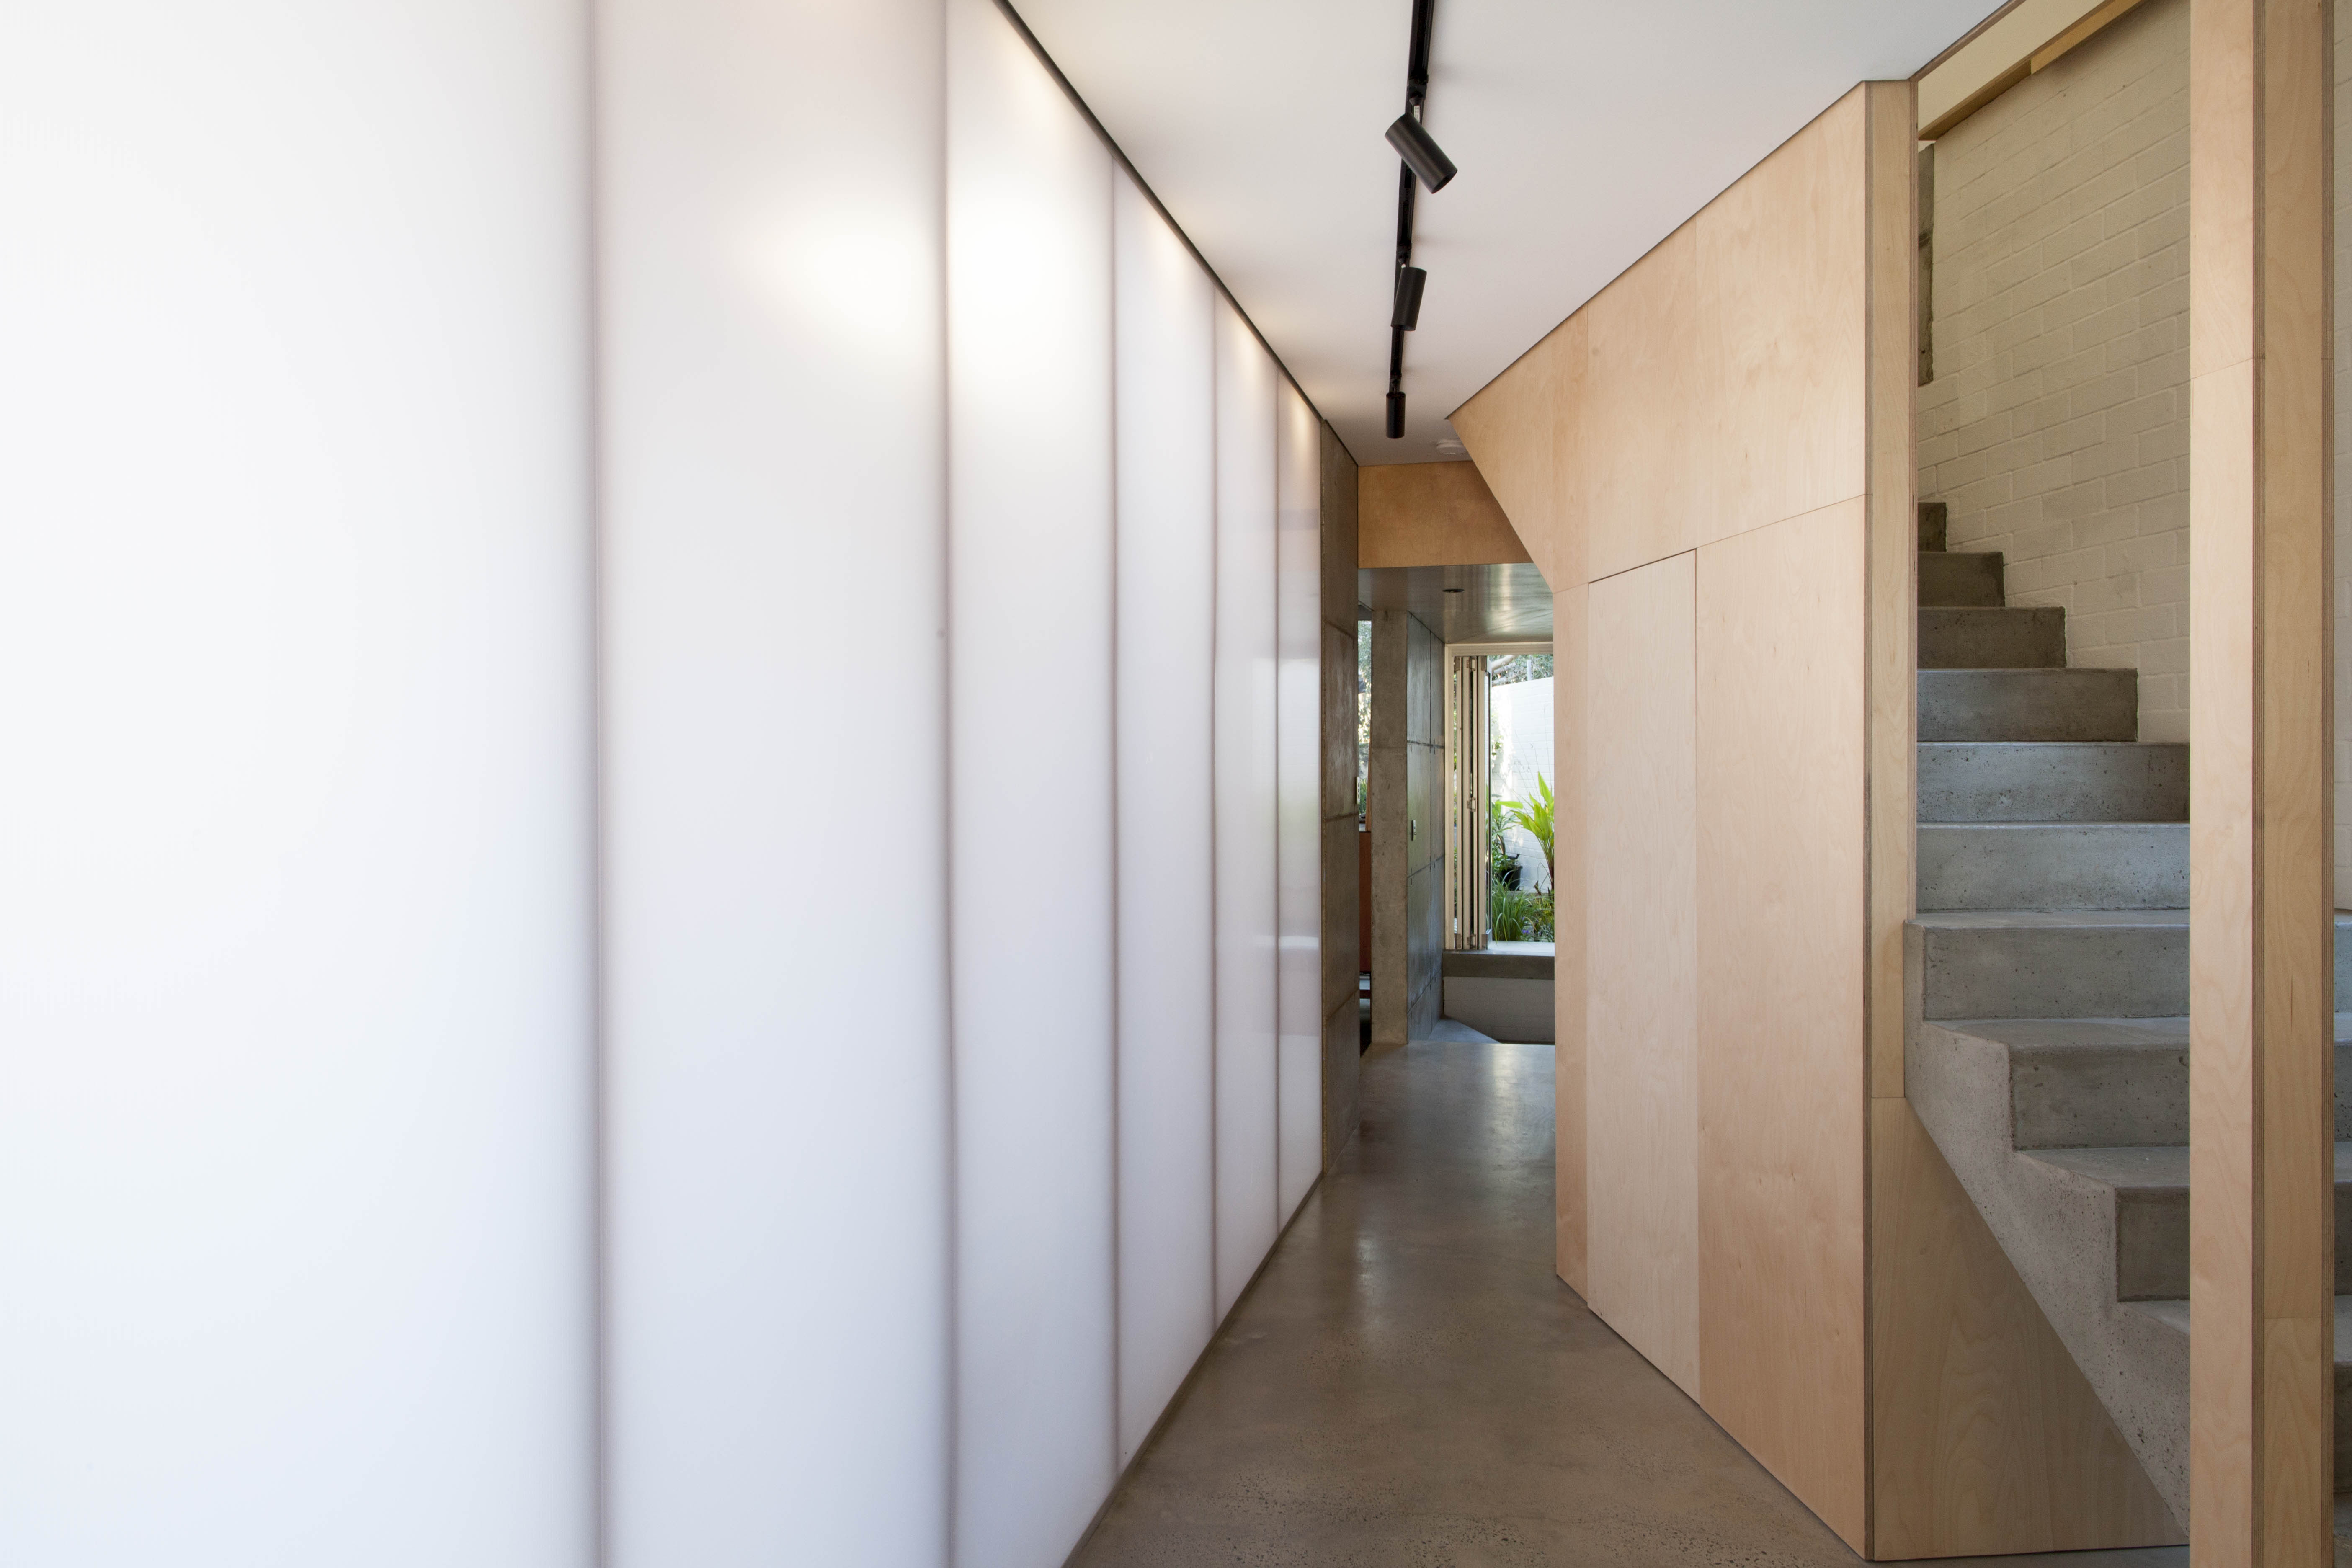 Gallery Of Silver Street House By Ehdo Architecture Local Design And Interiors South Fremantle, Wa Image 1